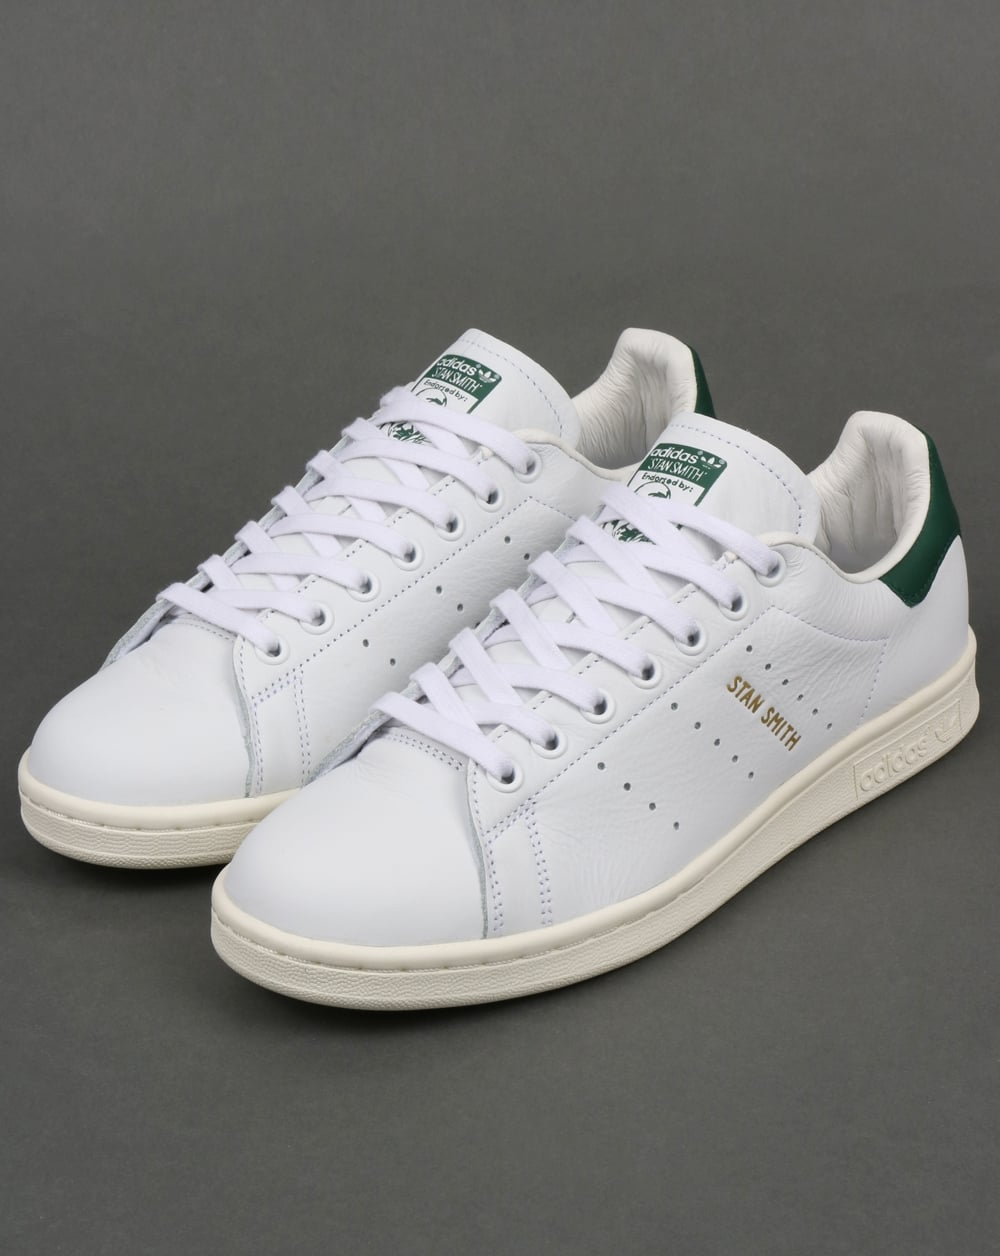 regard détaillé d8bdf 87abb Adidas Stan Smith Trainers White/Collegiate Green